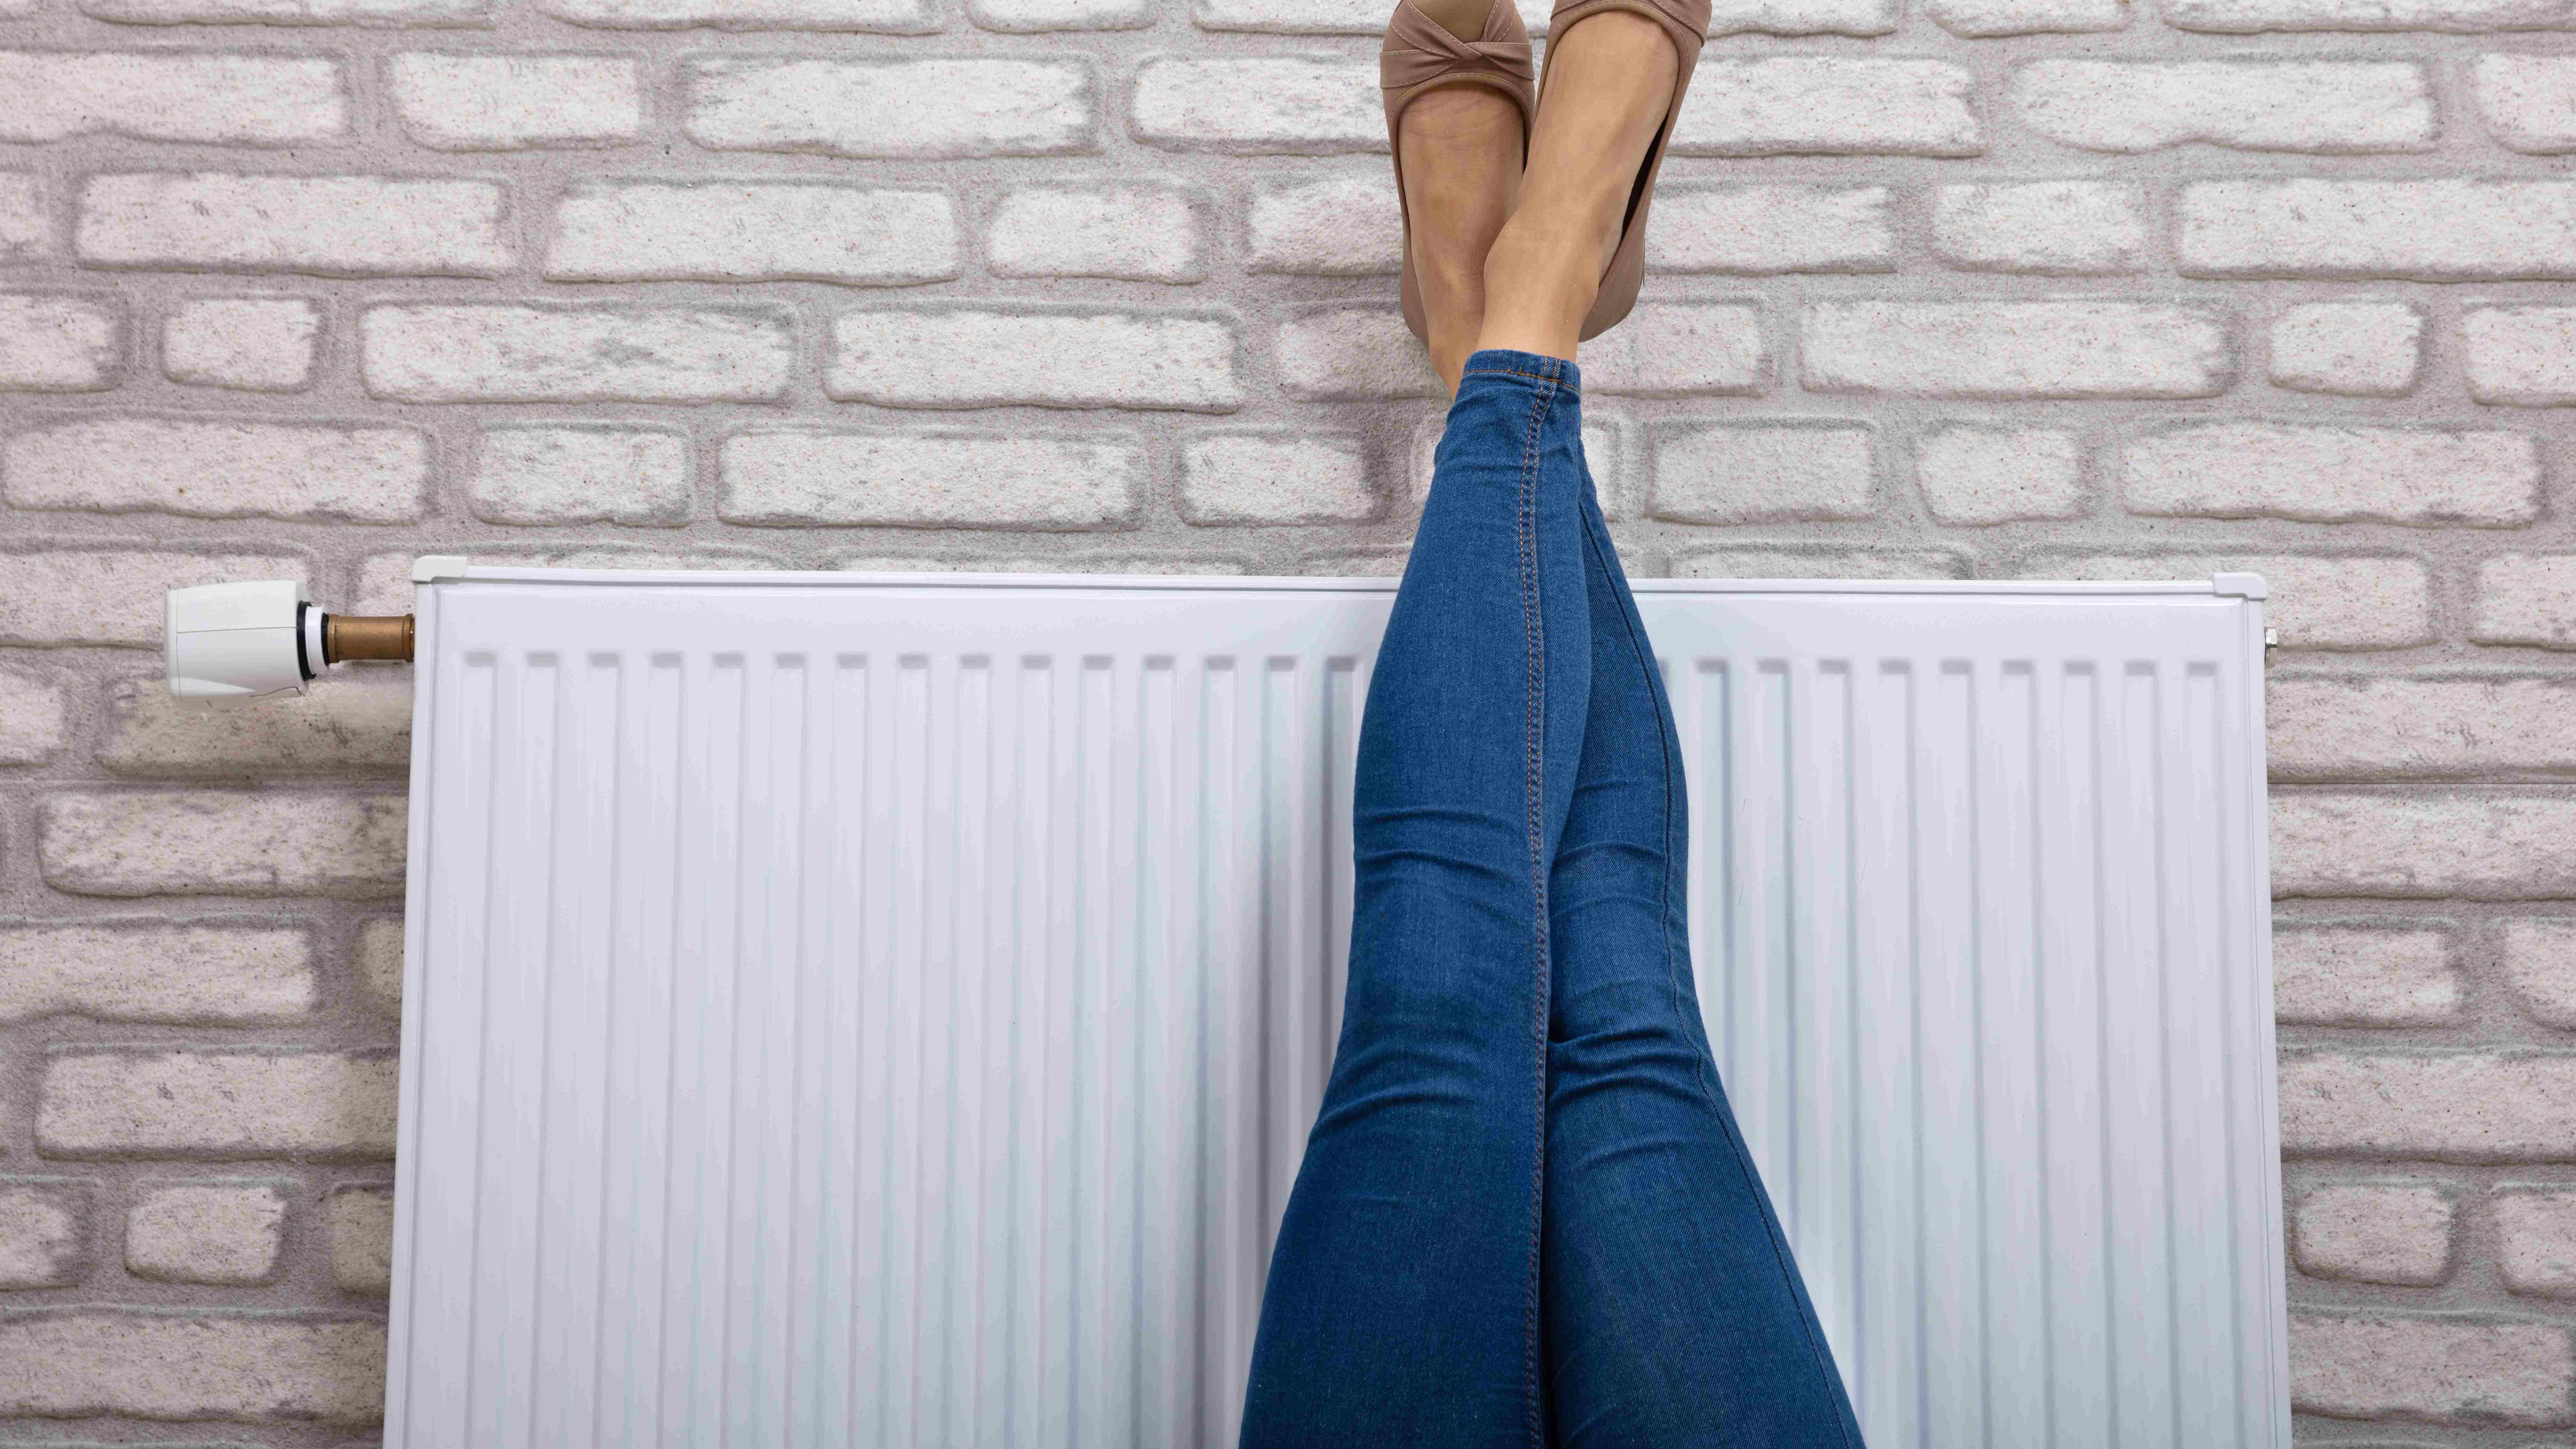 Central heating radiator buying guide